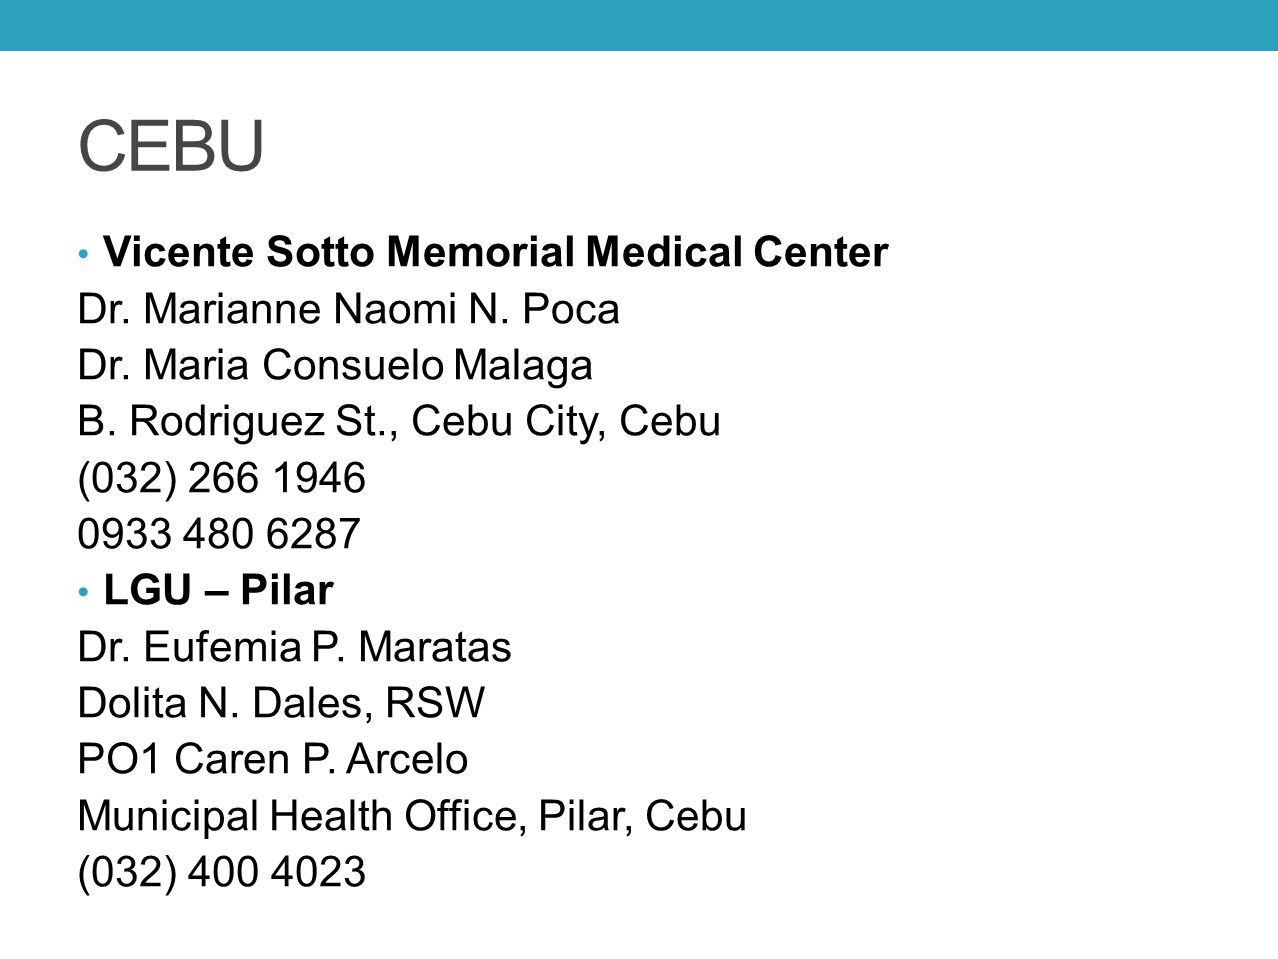 CEBU Vicente Sotto Memorial Medical Center Dr. Marianne Naomi N. Poca